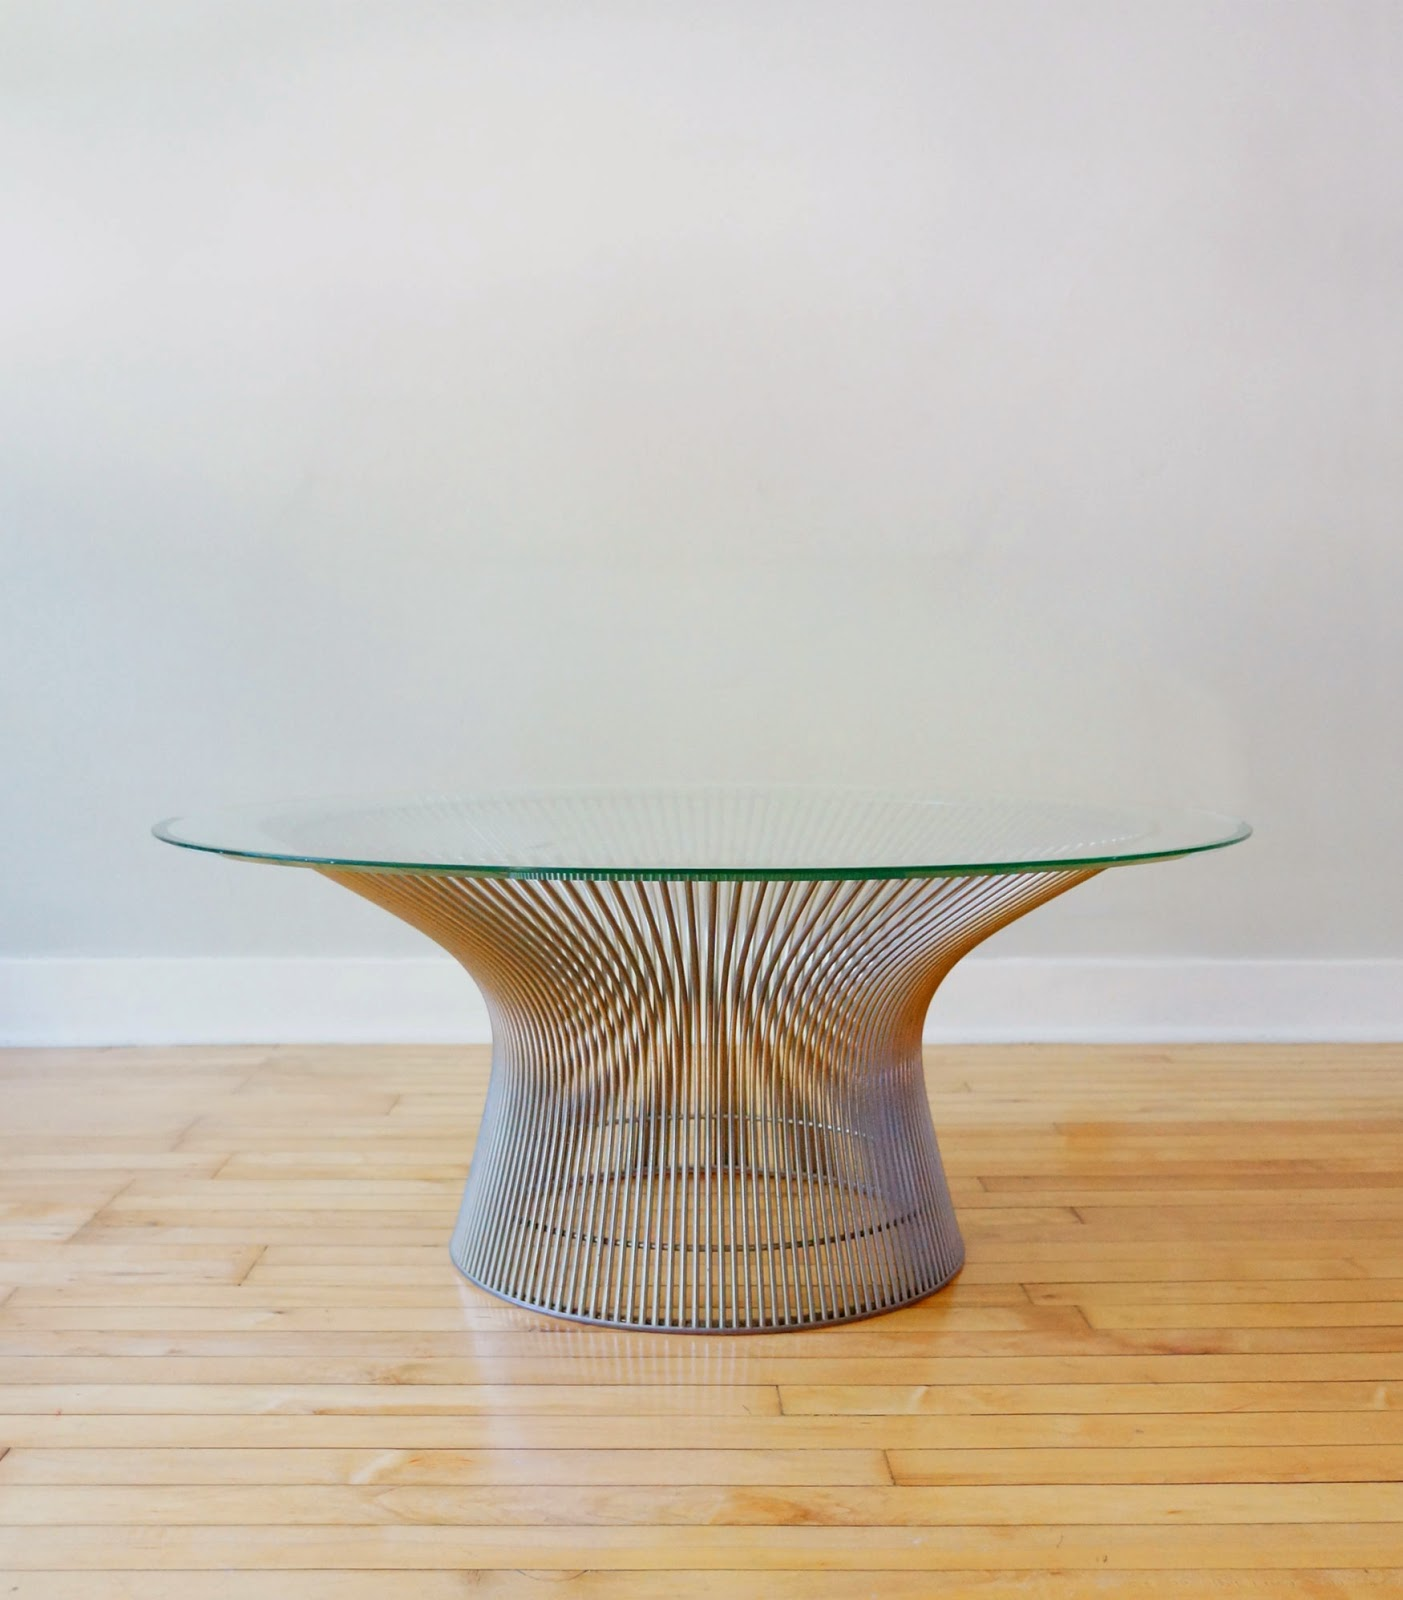 Str8mcm warren platner coffee table for Warren platner coffee table